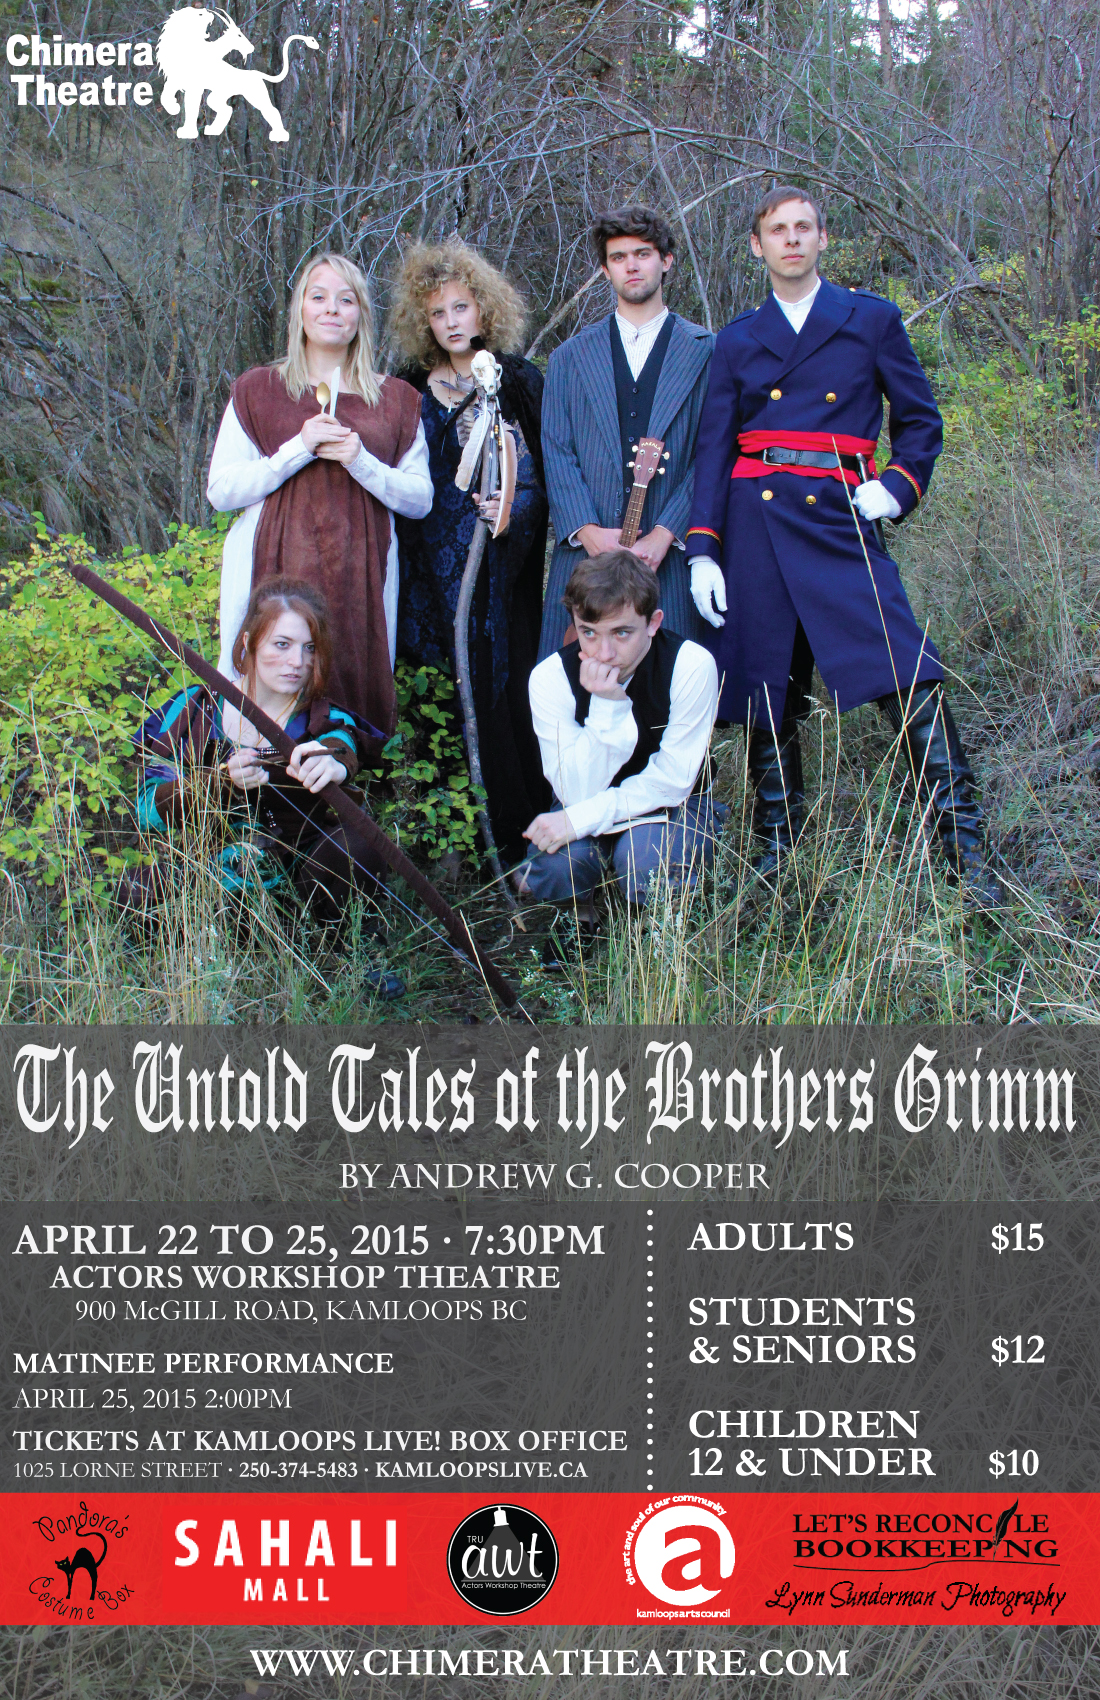 The Untold Tales of the Brothers Grimm (Kamloops)